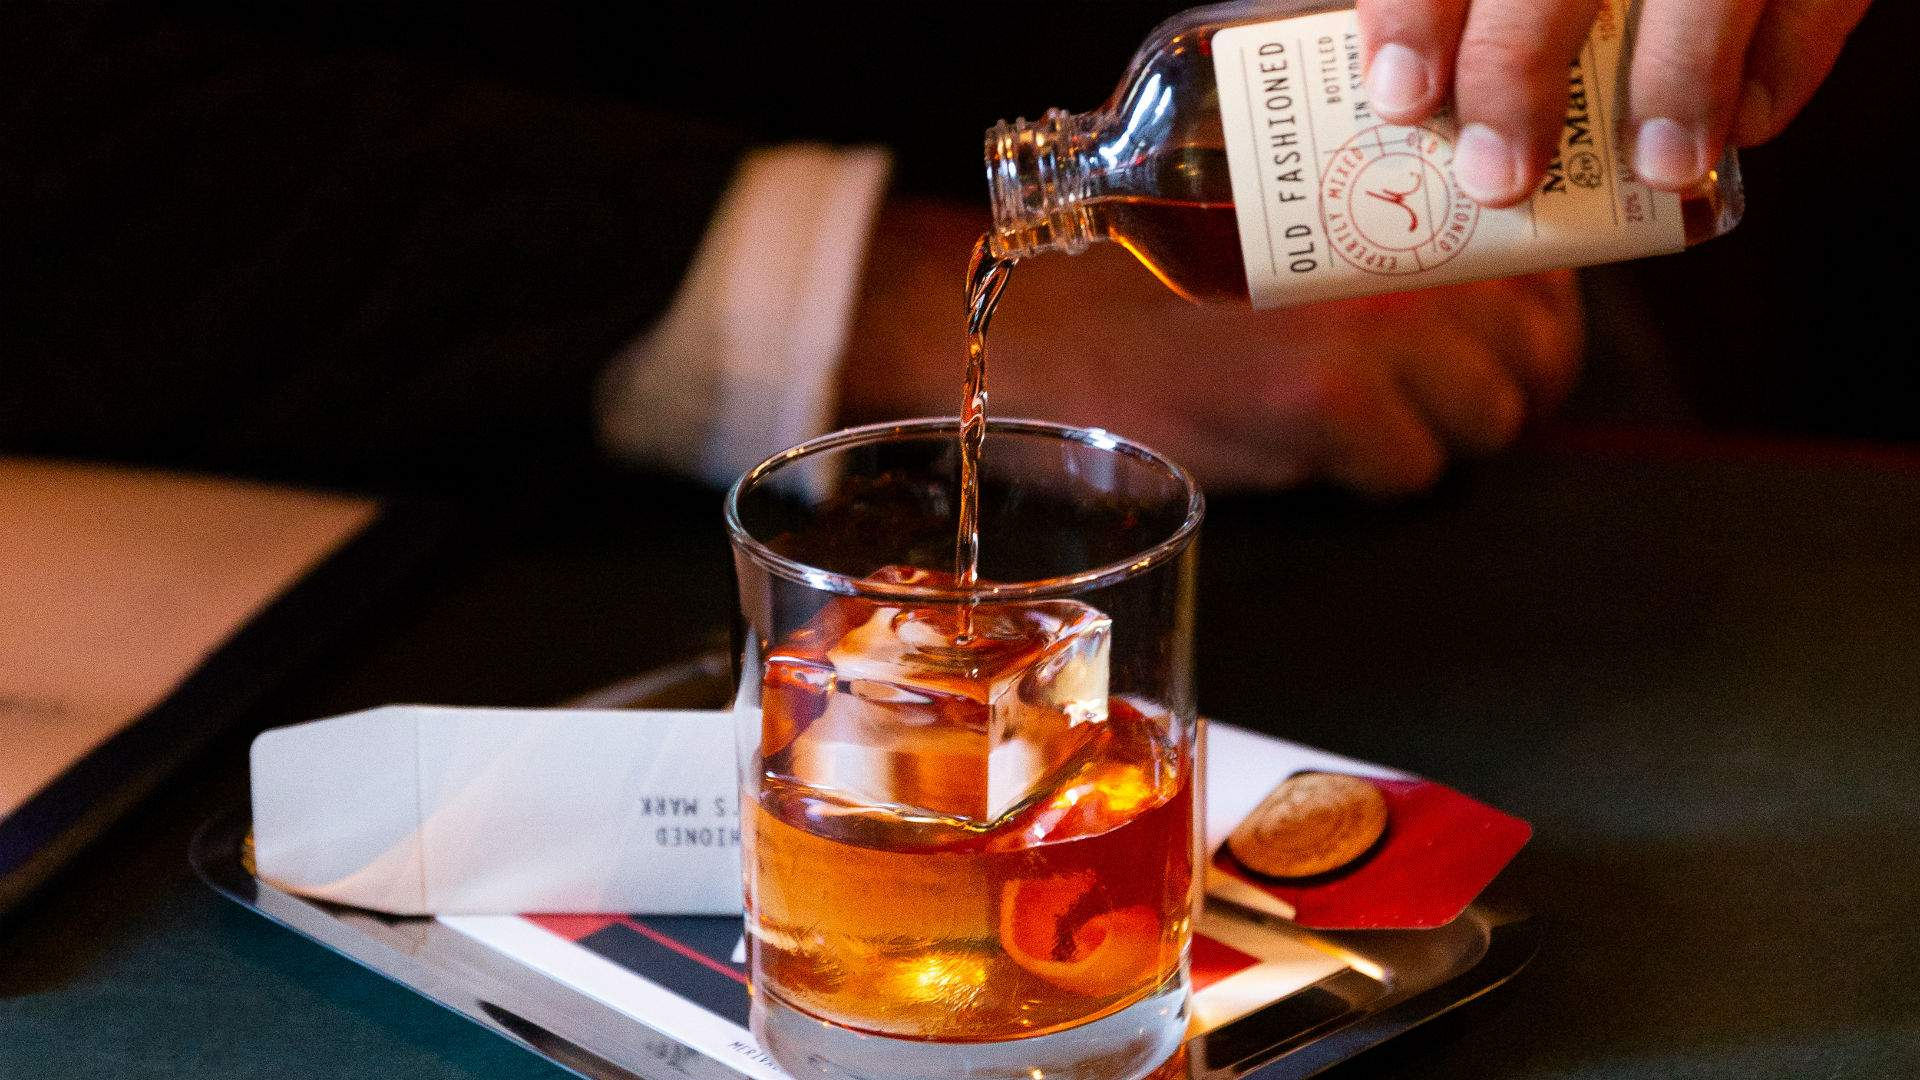 Merivale x Maker's Mark Old-Fashioned